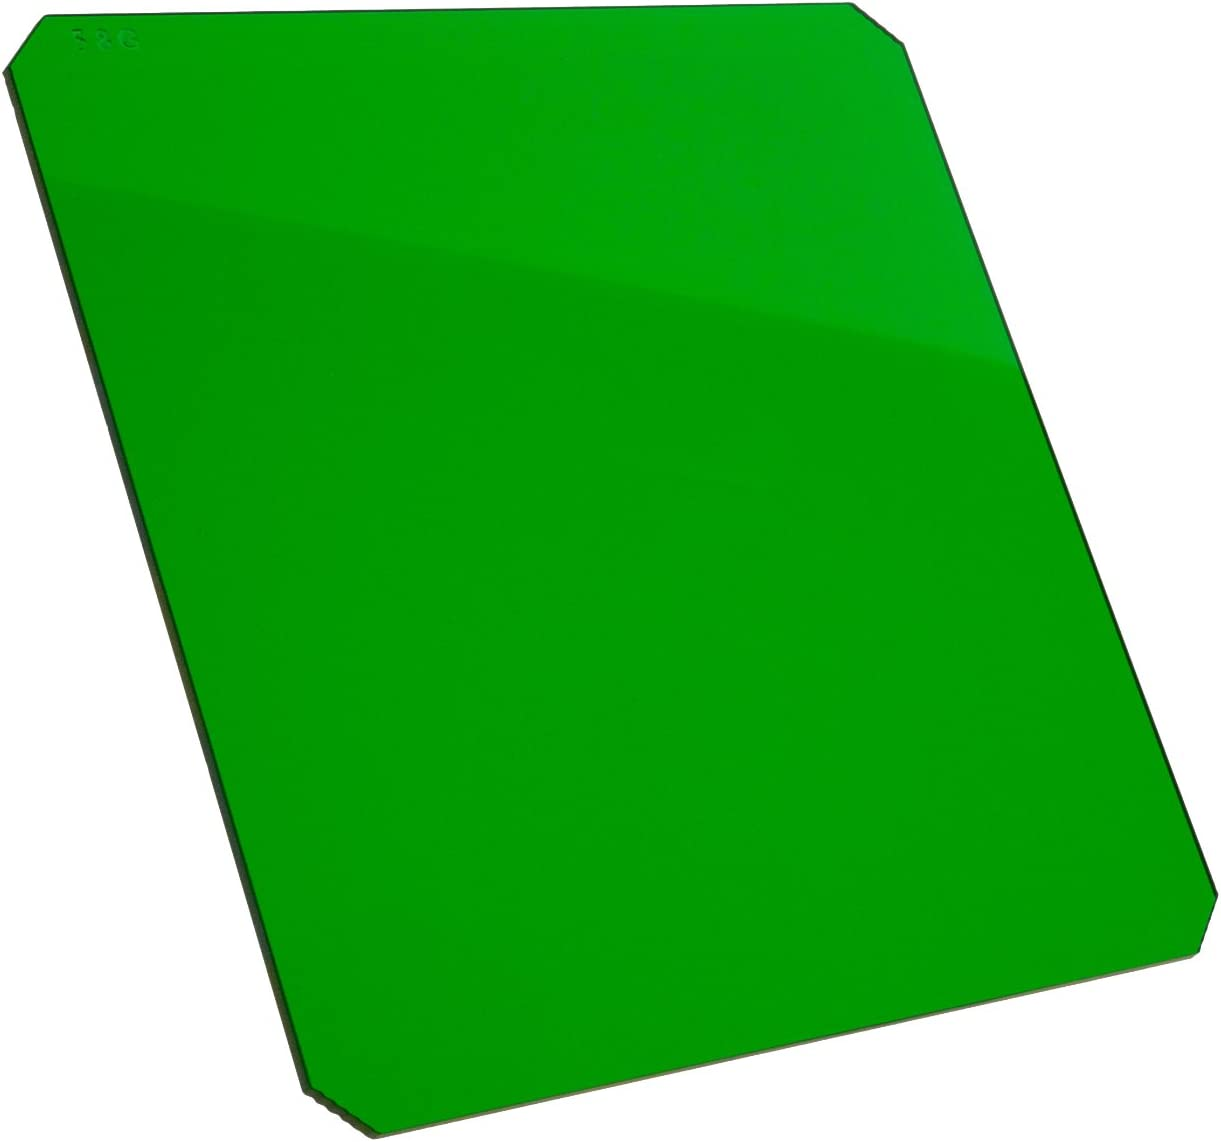 Formatt-Hitech 85x85mm 3.35x3.35 Resin Black and White 58 Green